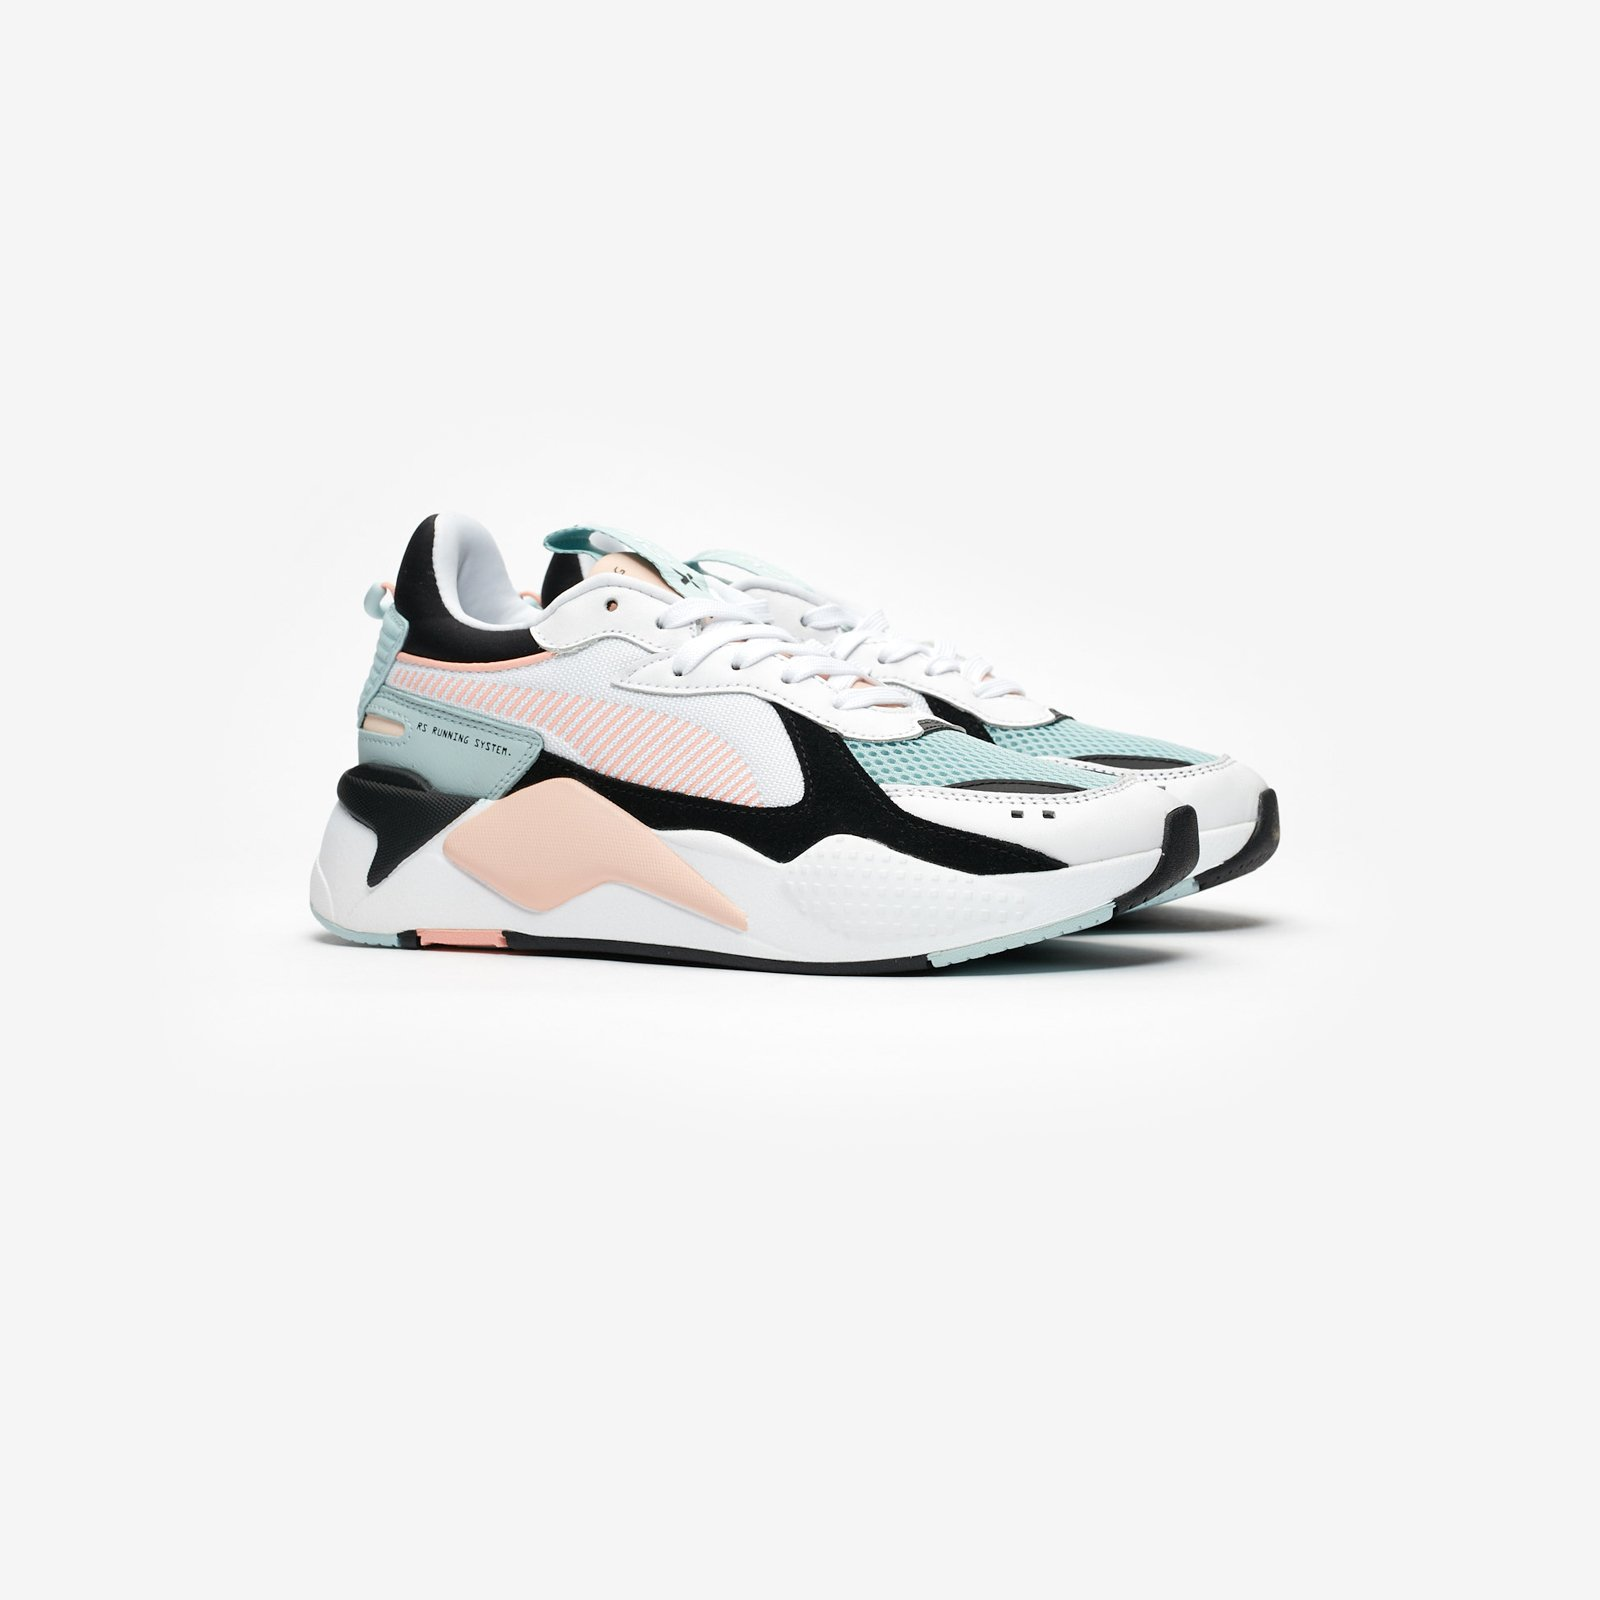 Puma RS-X Reinvention - 369579-06 - Sneakersnstuff ...